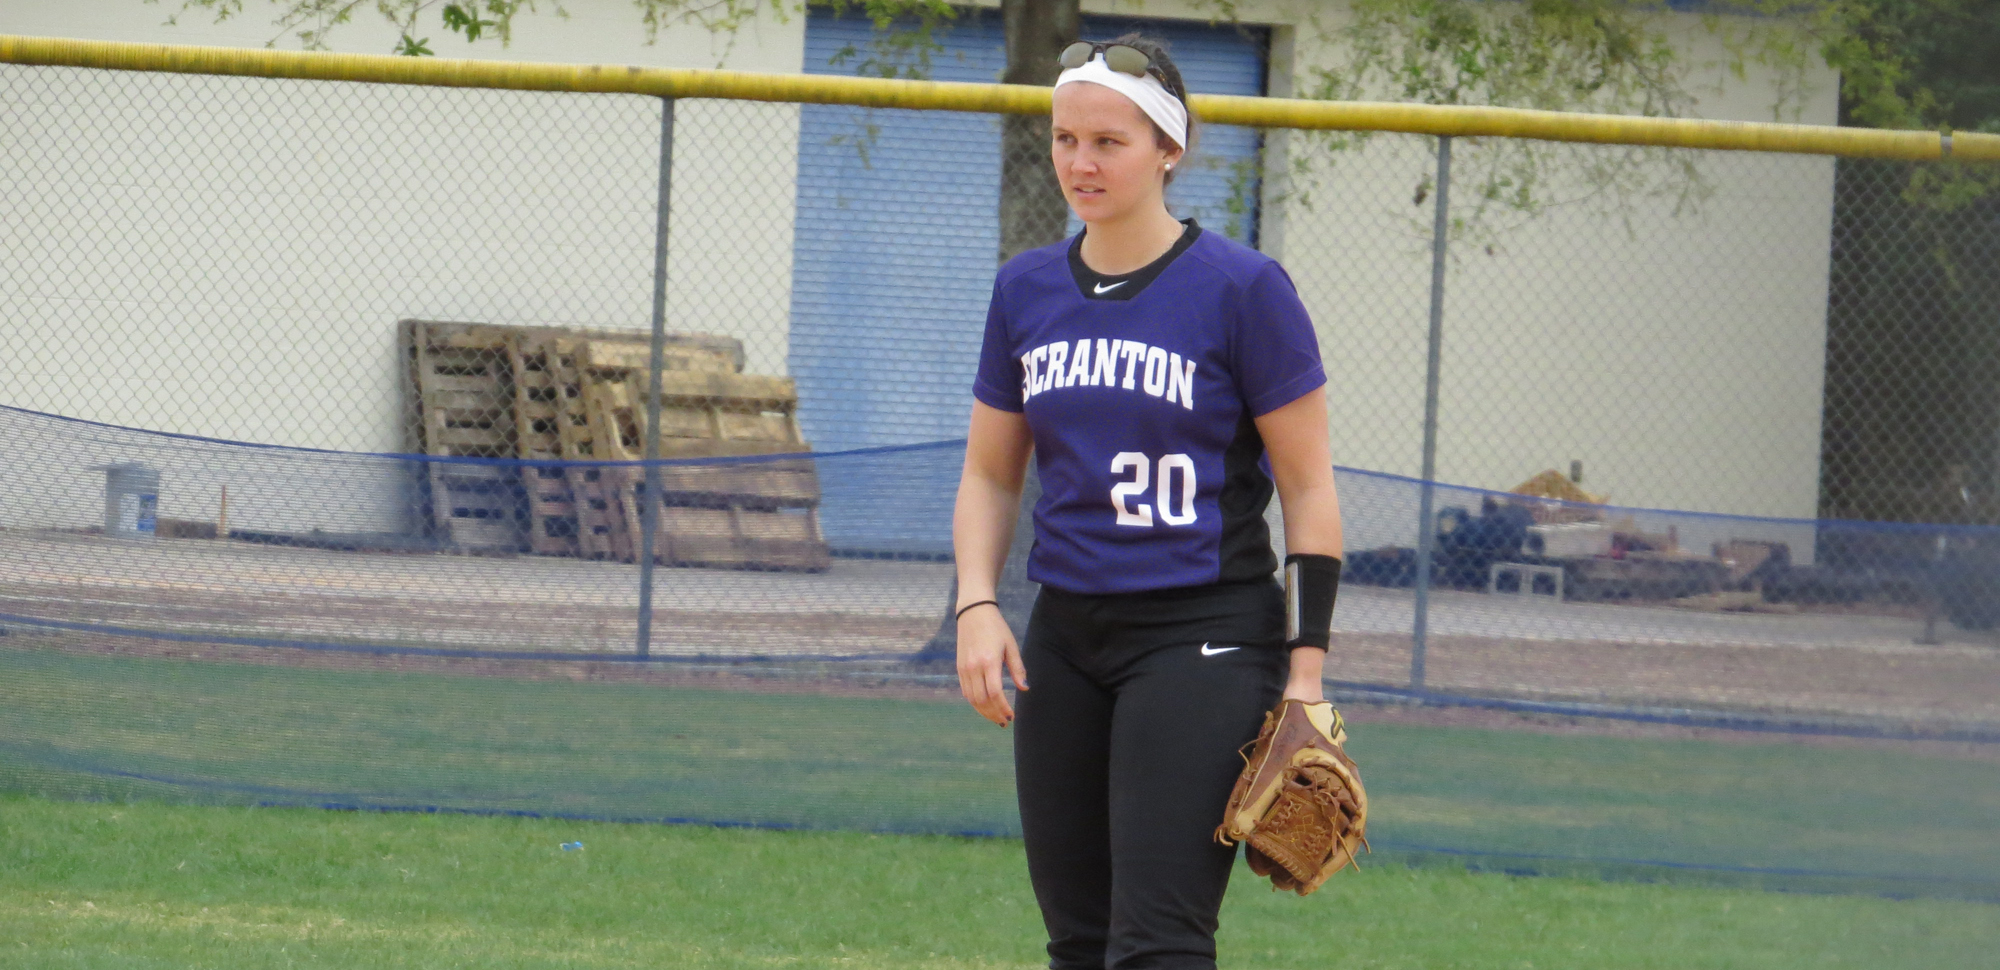 Cyan Scarduzio had a hit and scored a run in Scranton's win over Misericordia on Thursday.